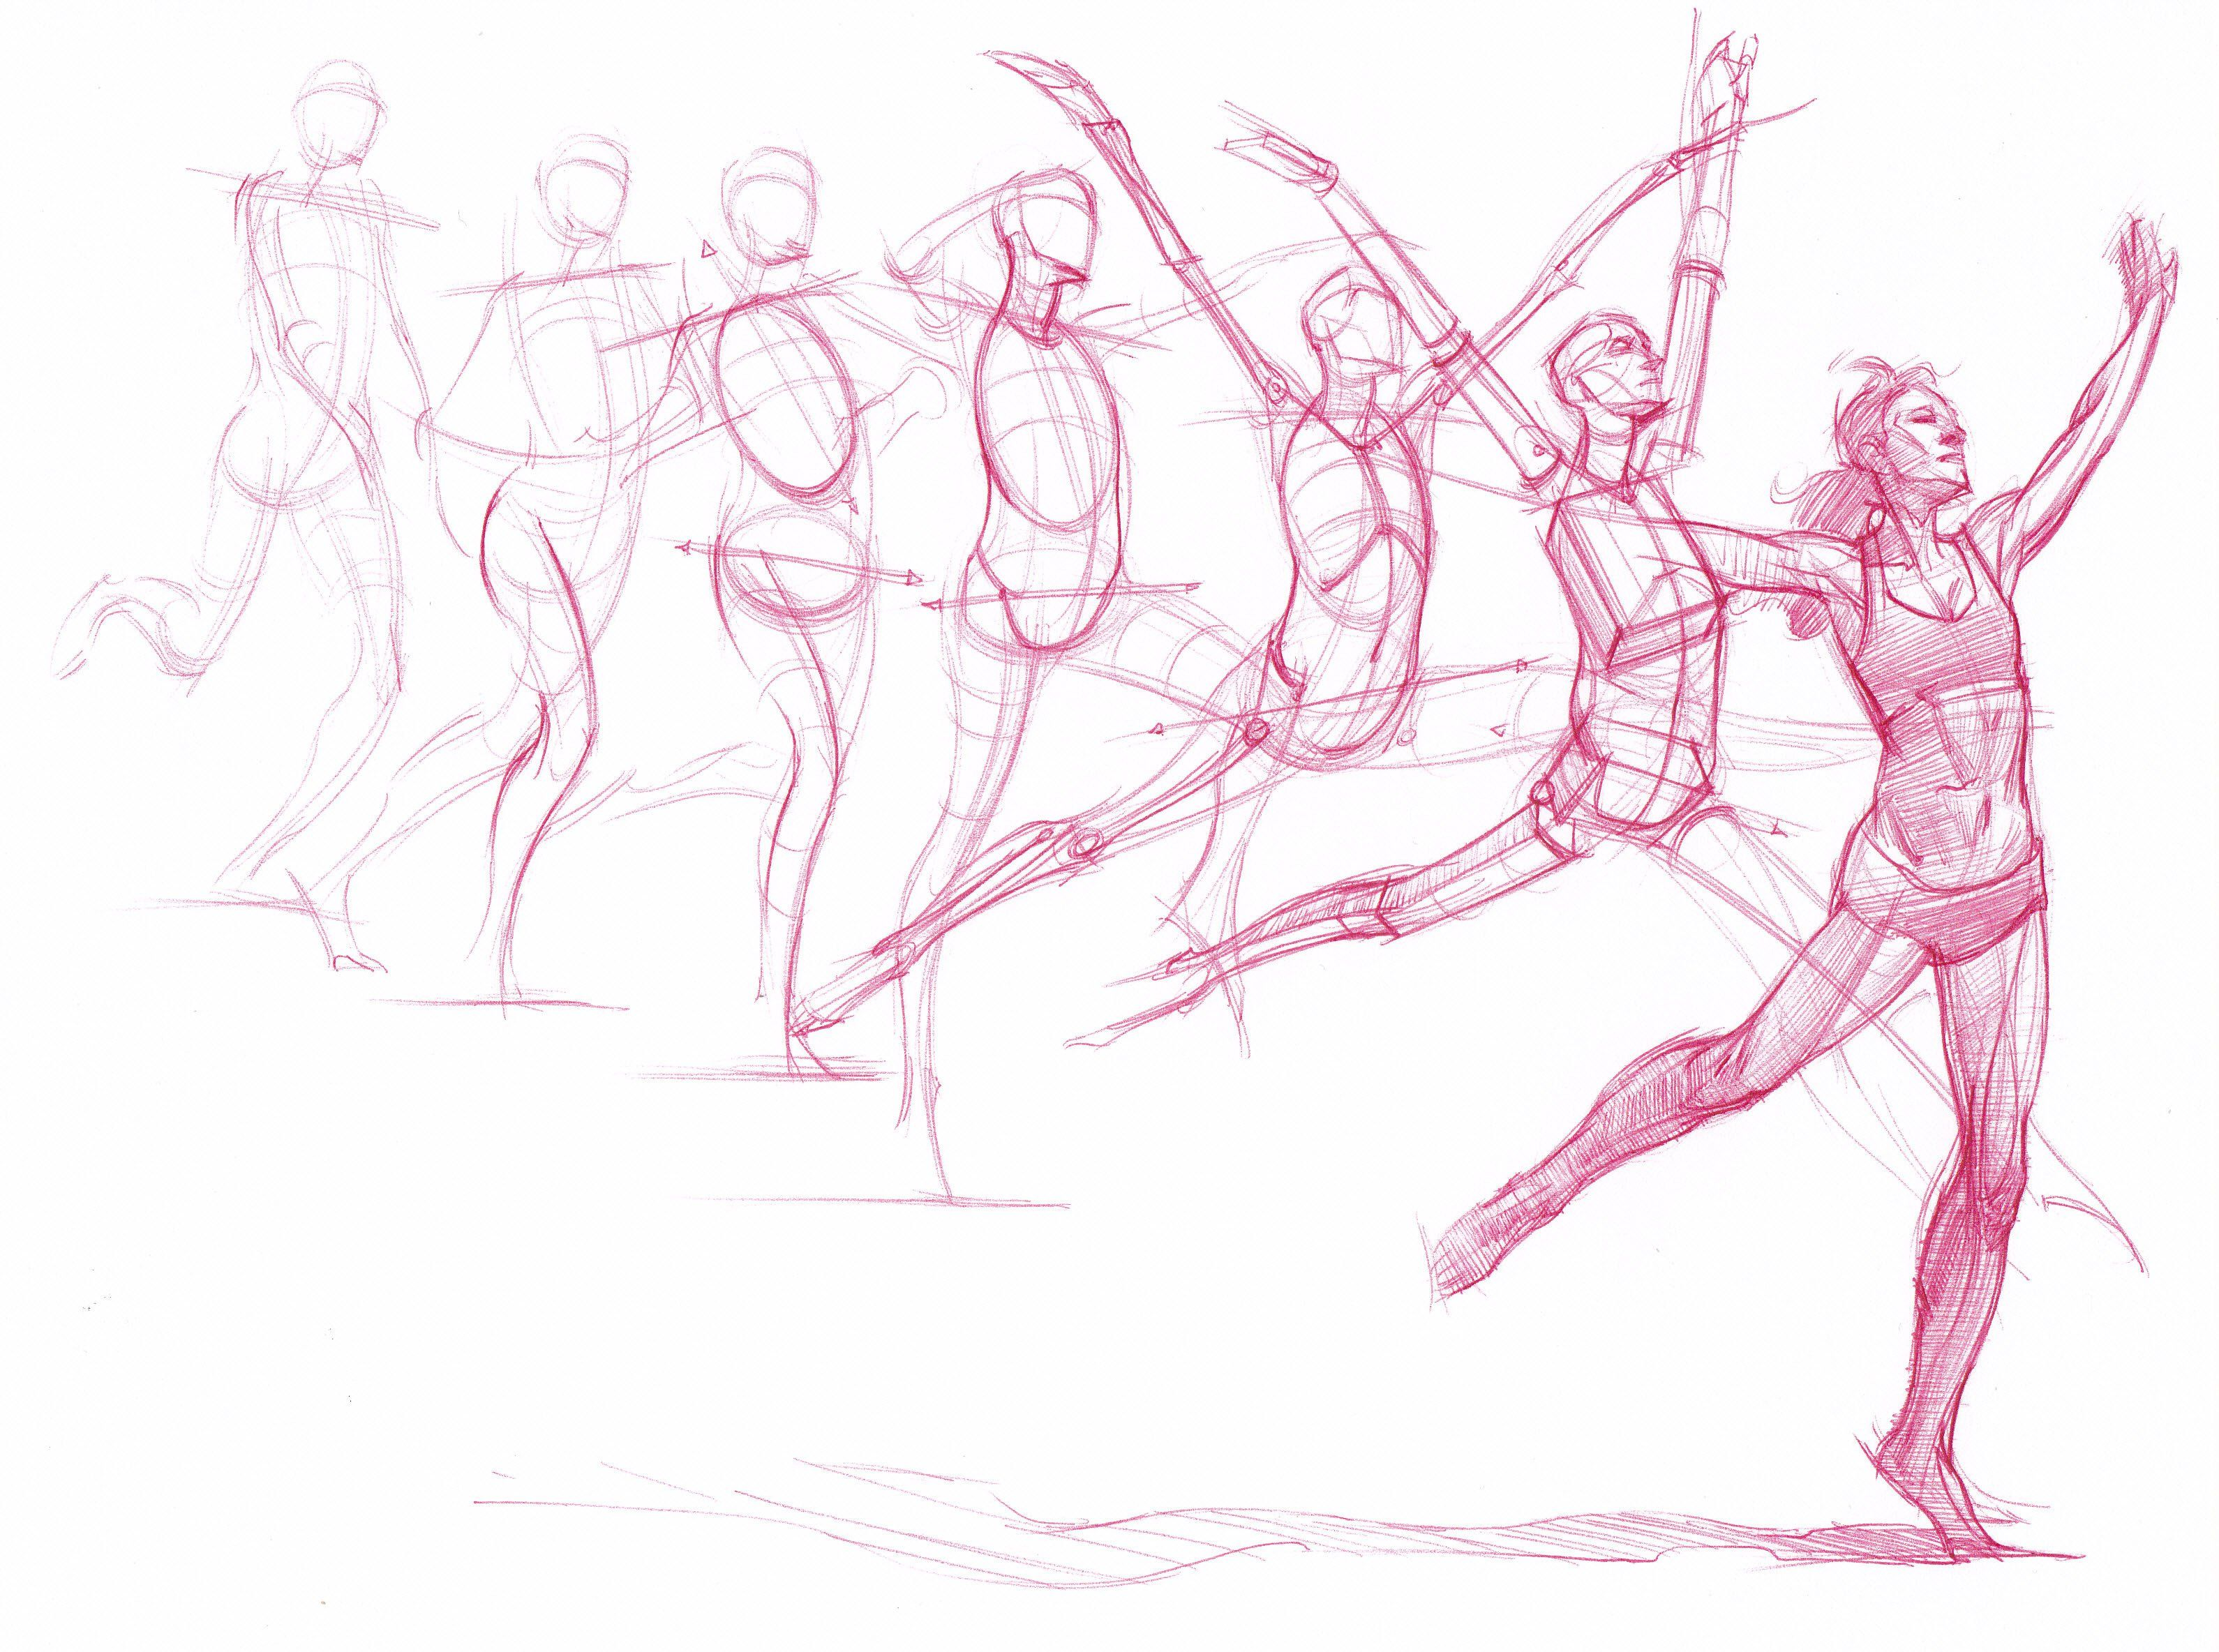 Process Study Scott Eaton 39 S Bodies In Motion Referens